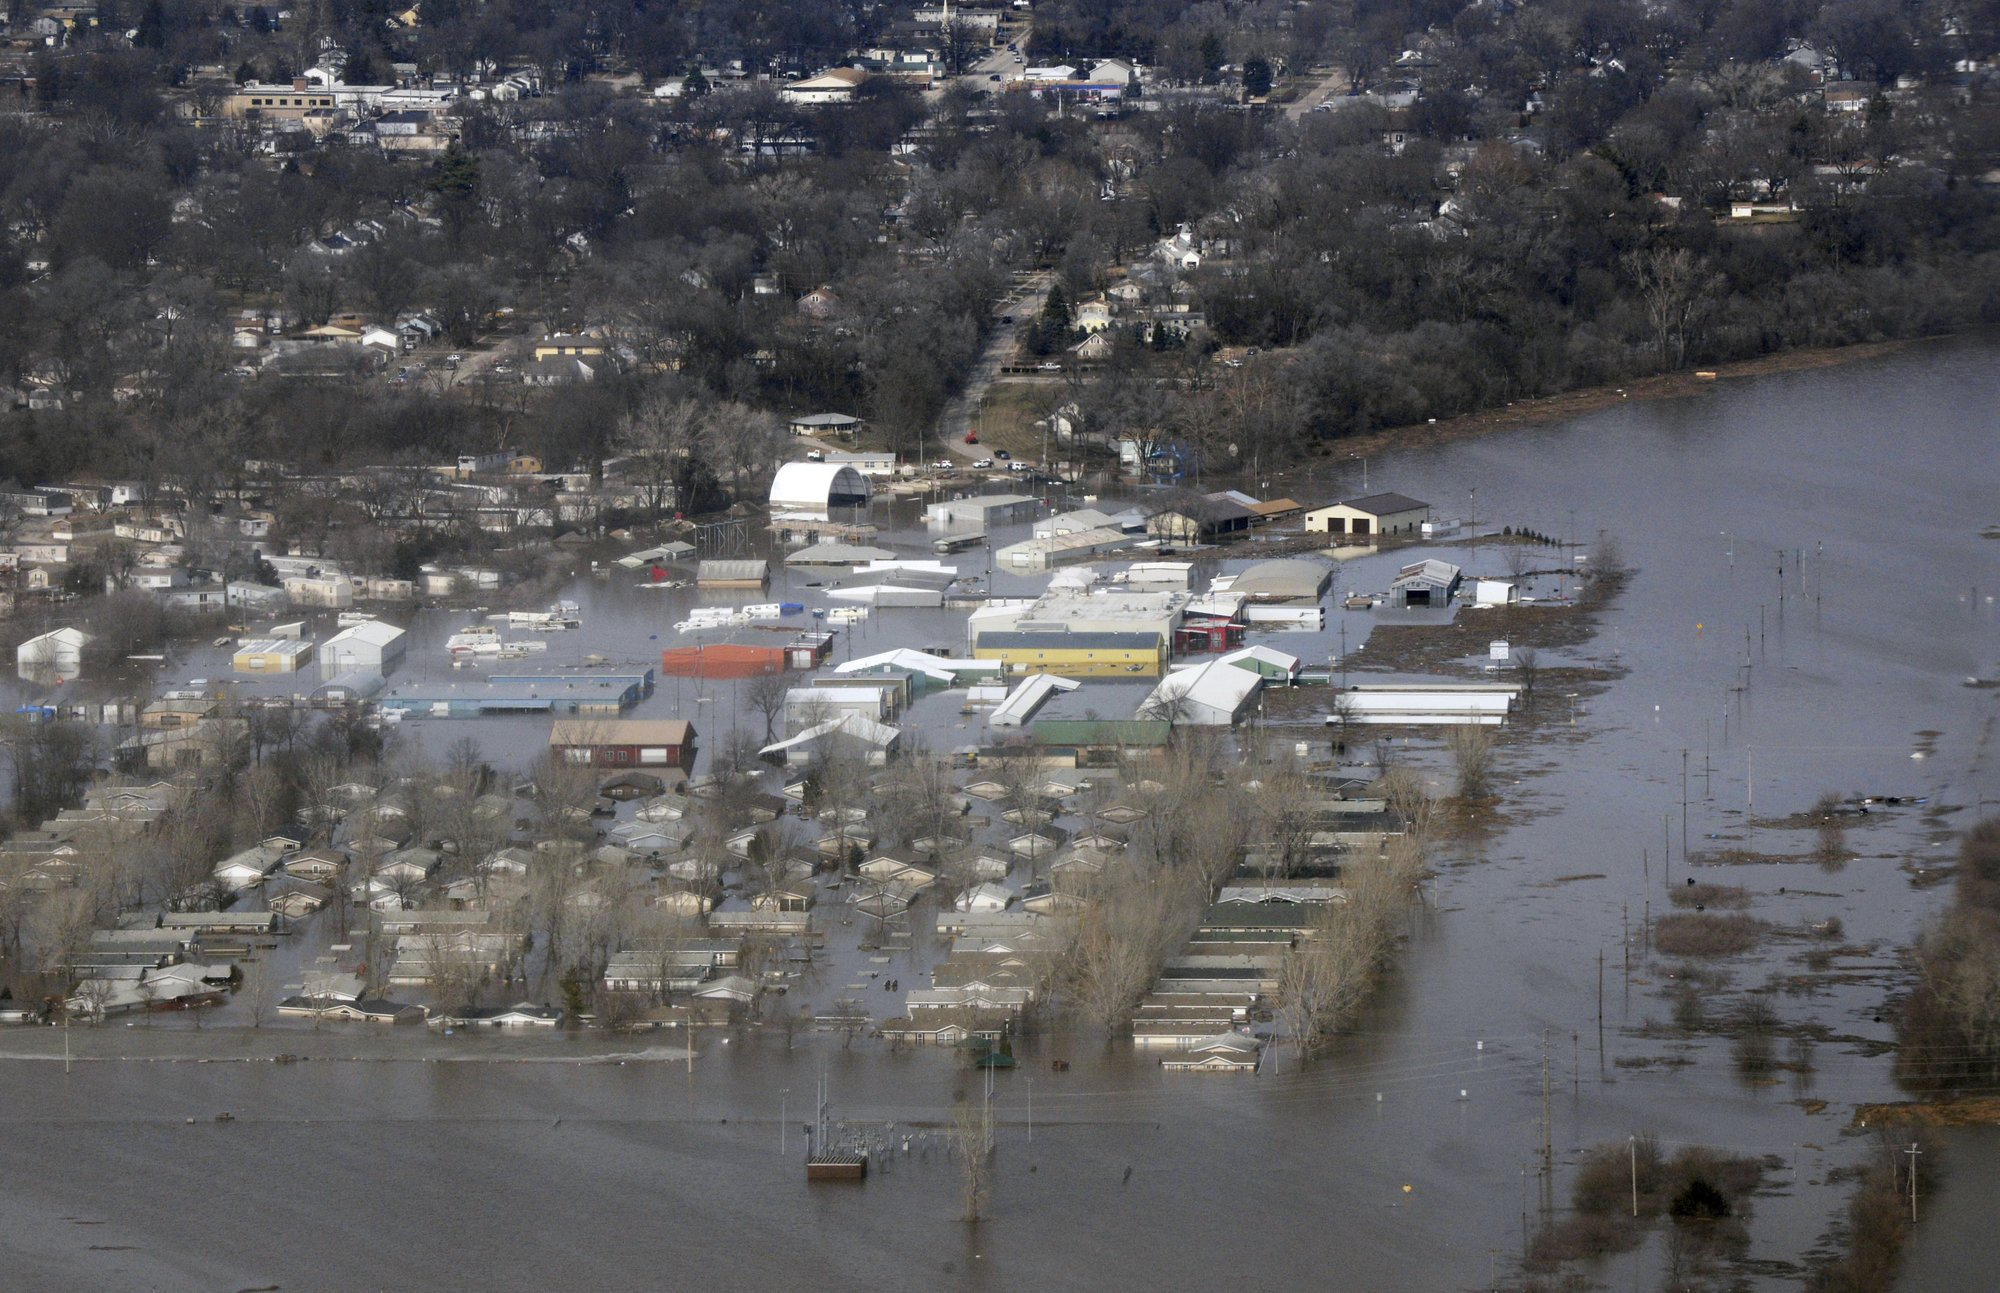 Floods suggest national security threat from climate change